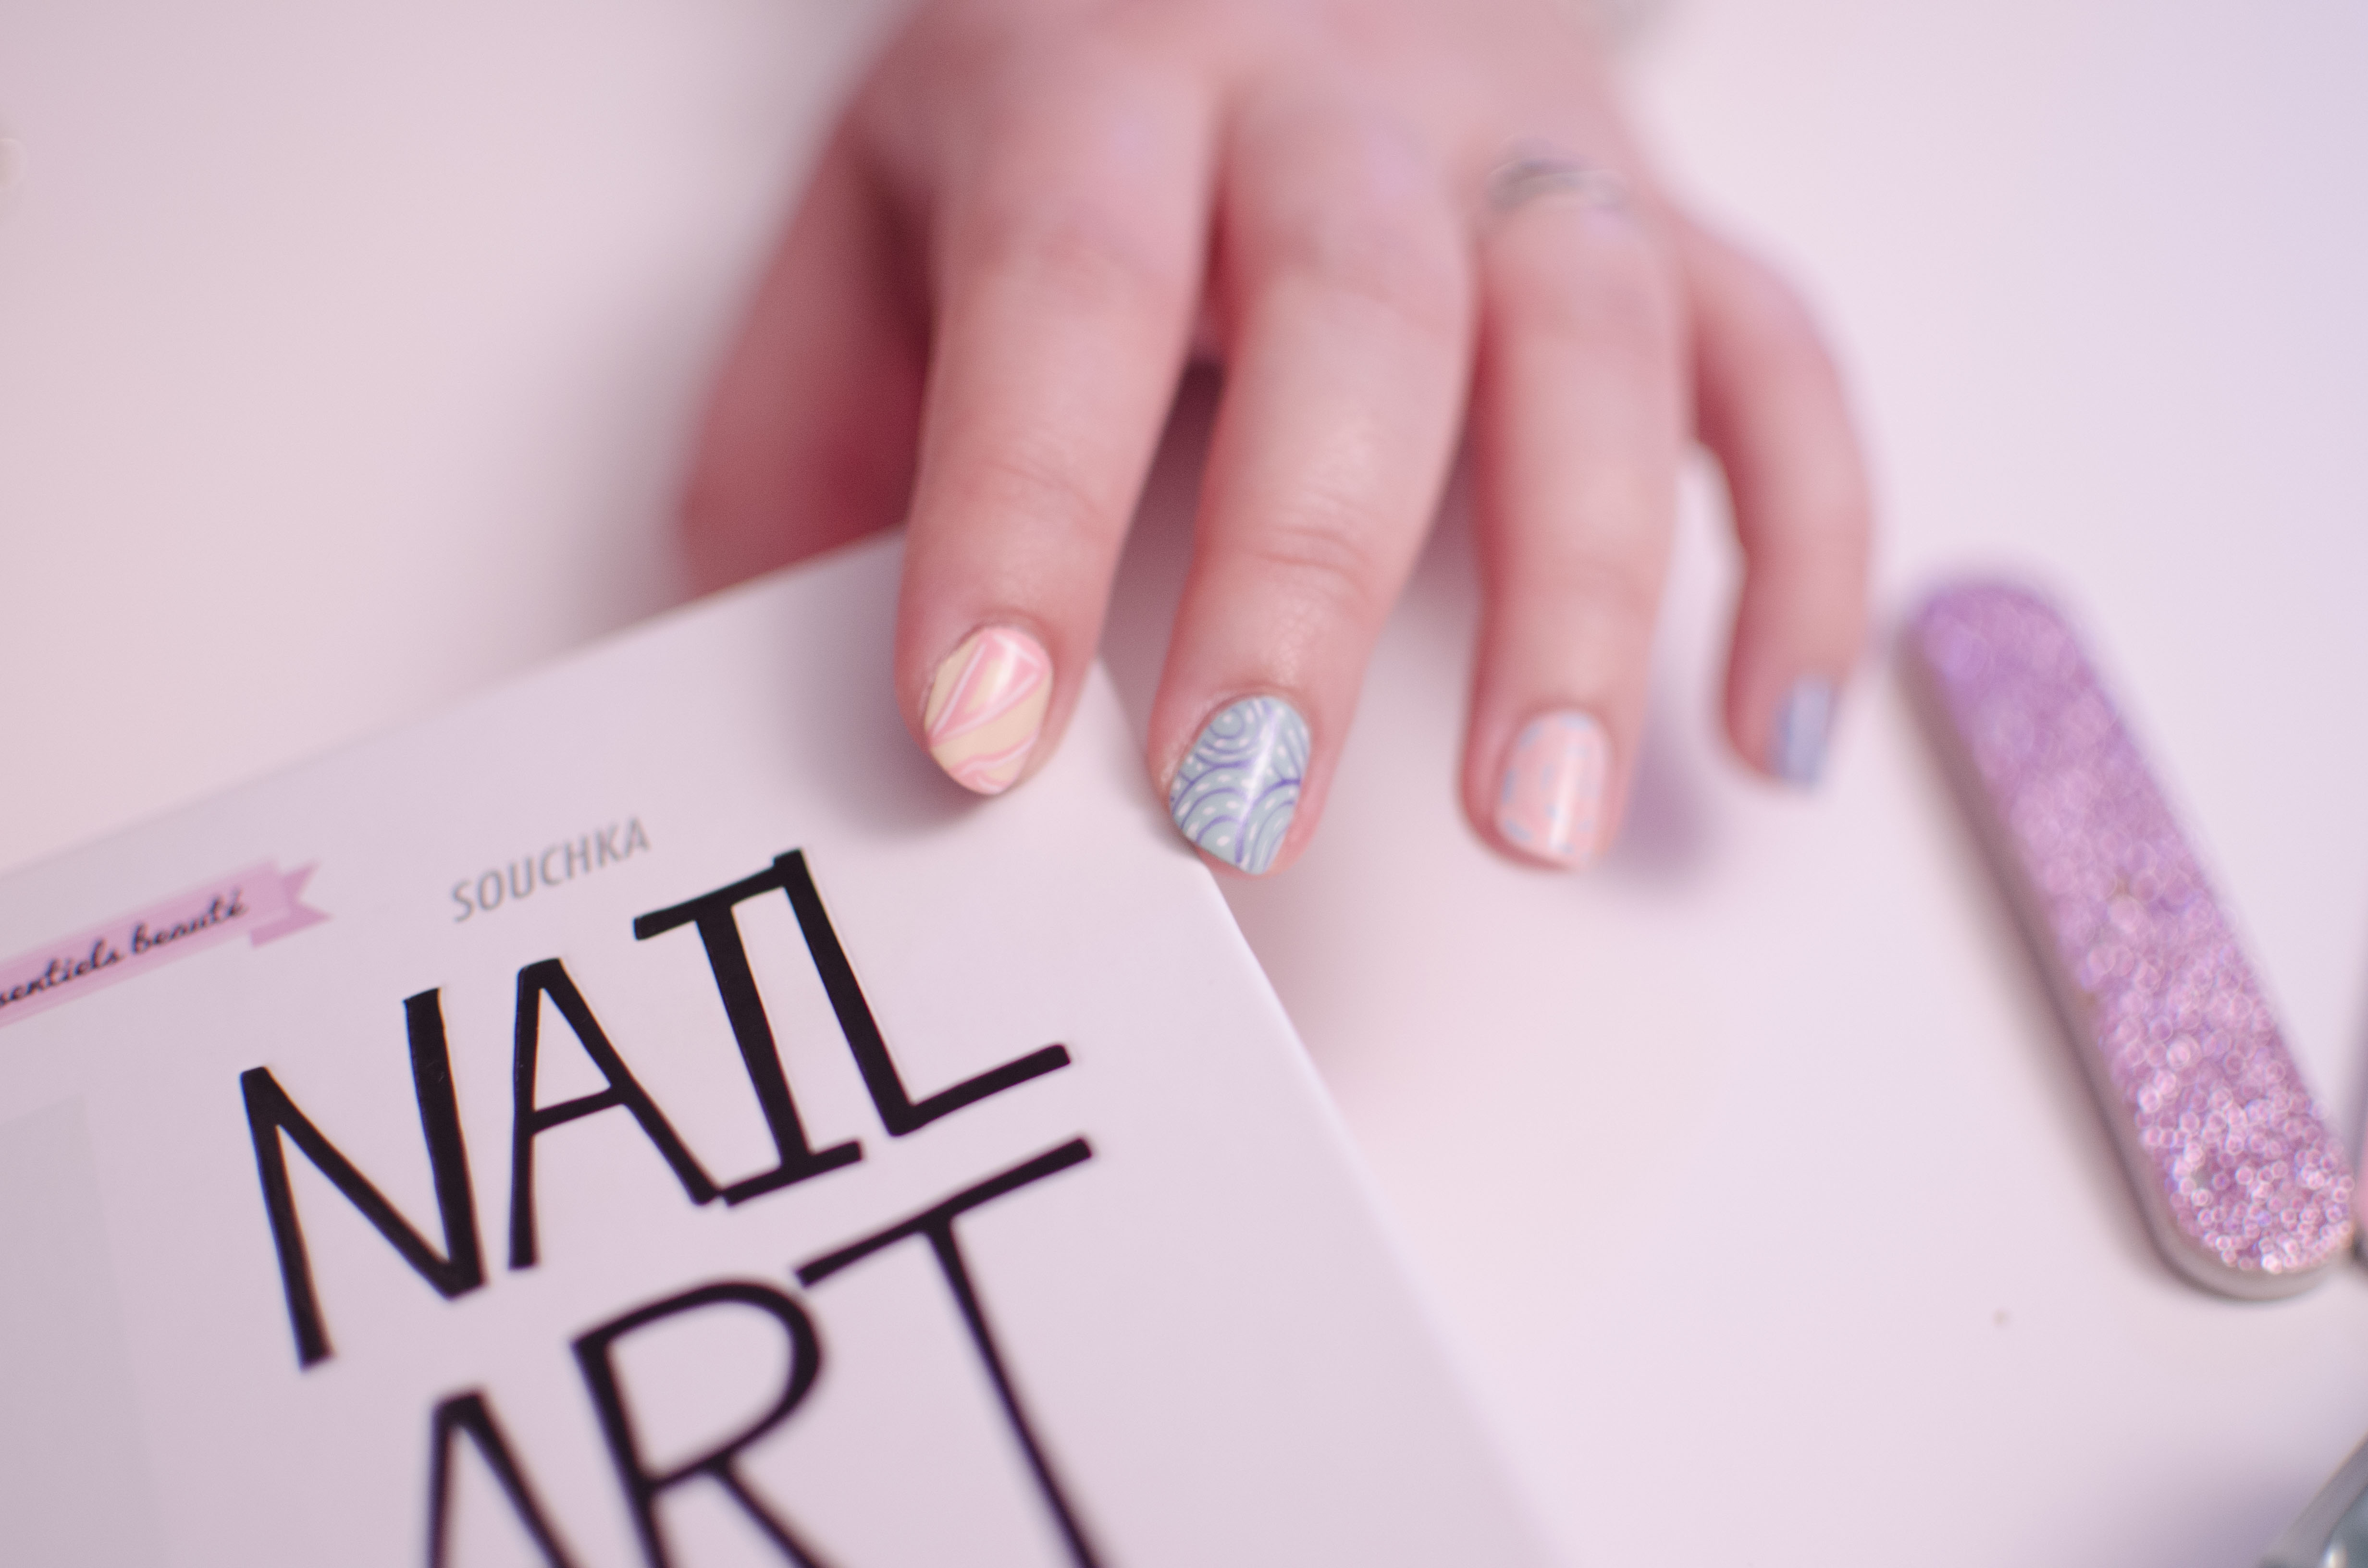 nail art book notd nail molish